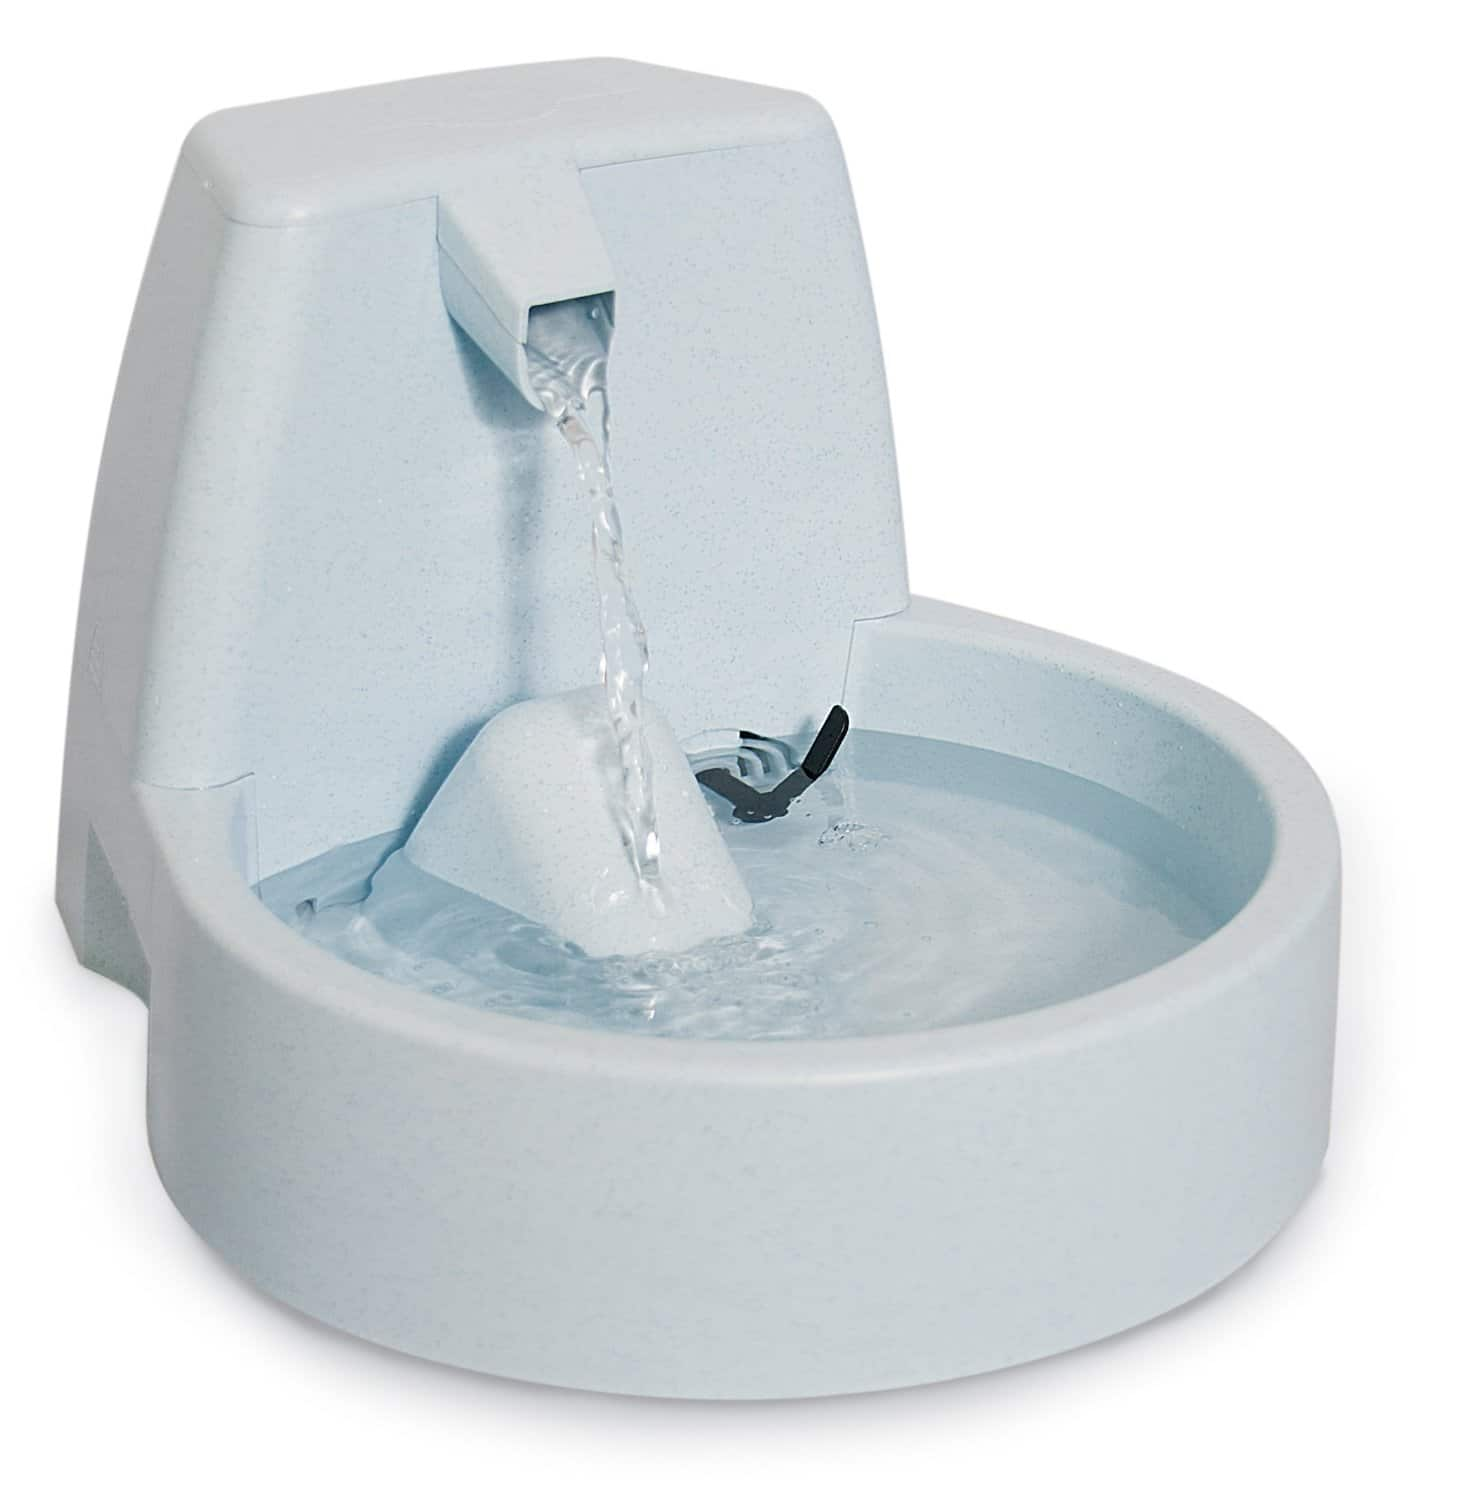 PetSafe Fountains & Feeders: Drinkwell Pet Fountain $19, Electronic Pet Feeder  $17.75 & More